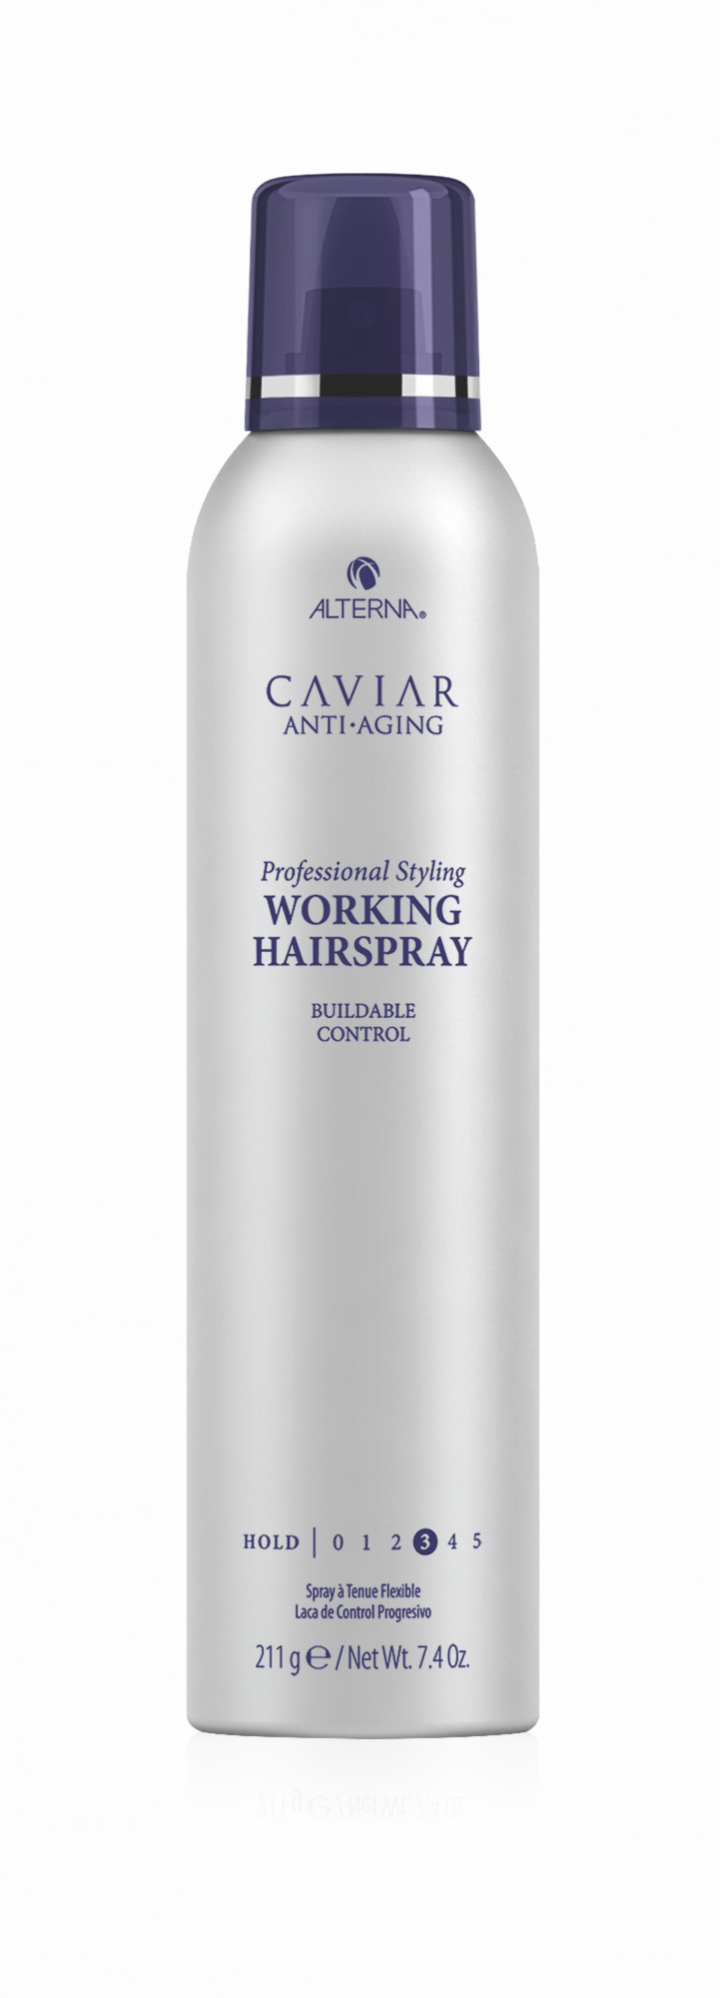 Caviar Anti-Aging PROFESSIONAL STYLING Working Hairspray